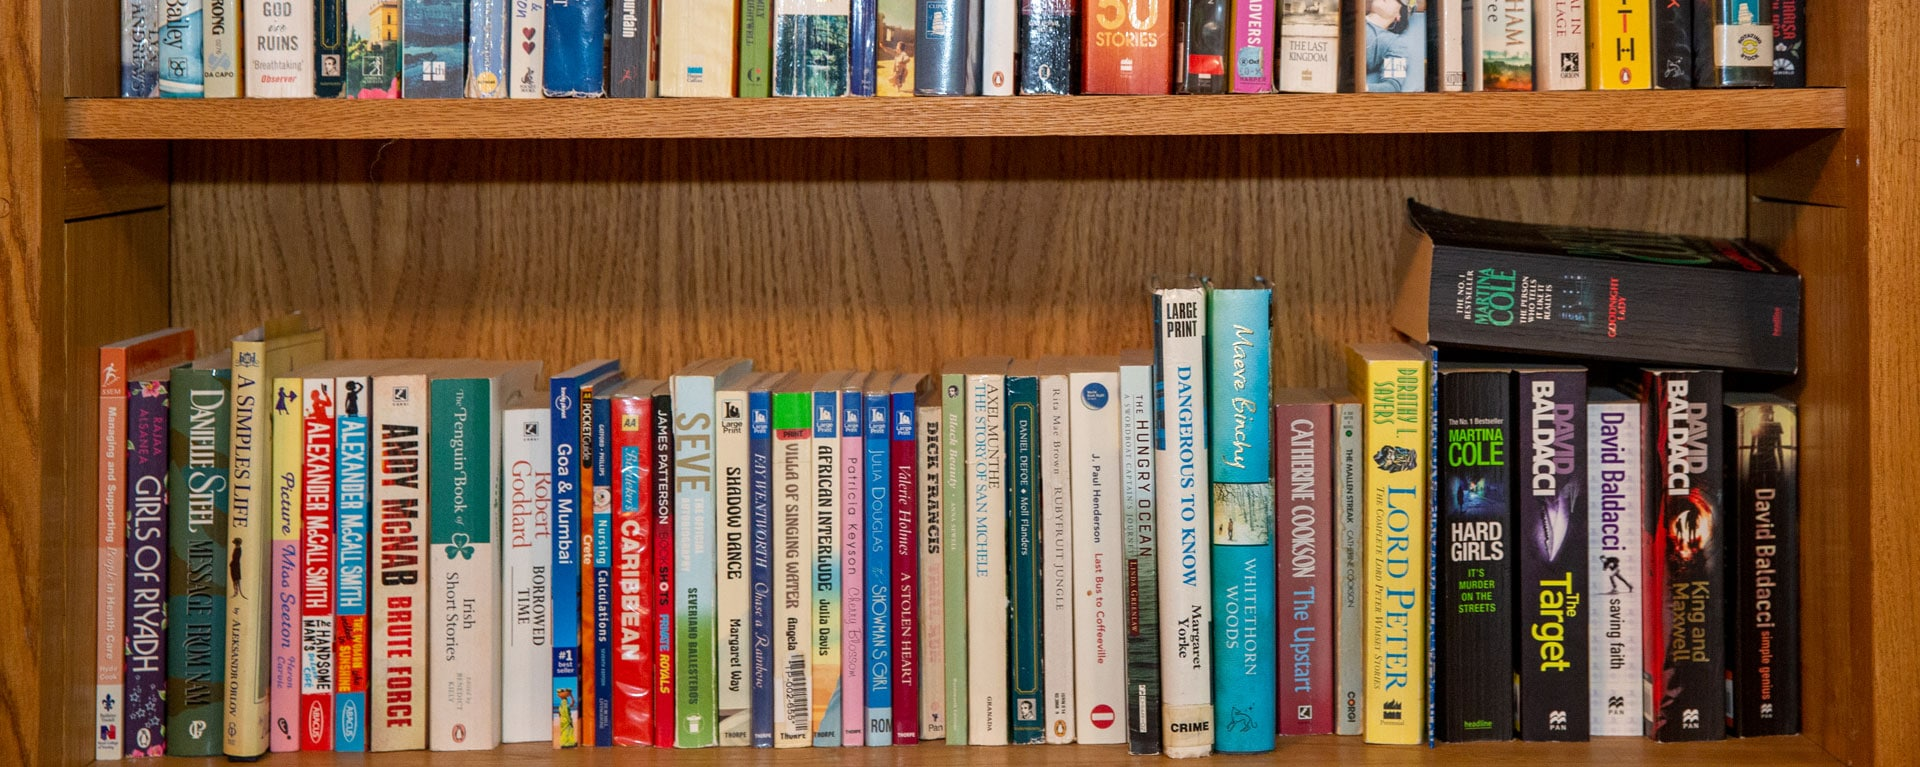 Laurel Care homes book collection in the library